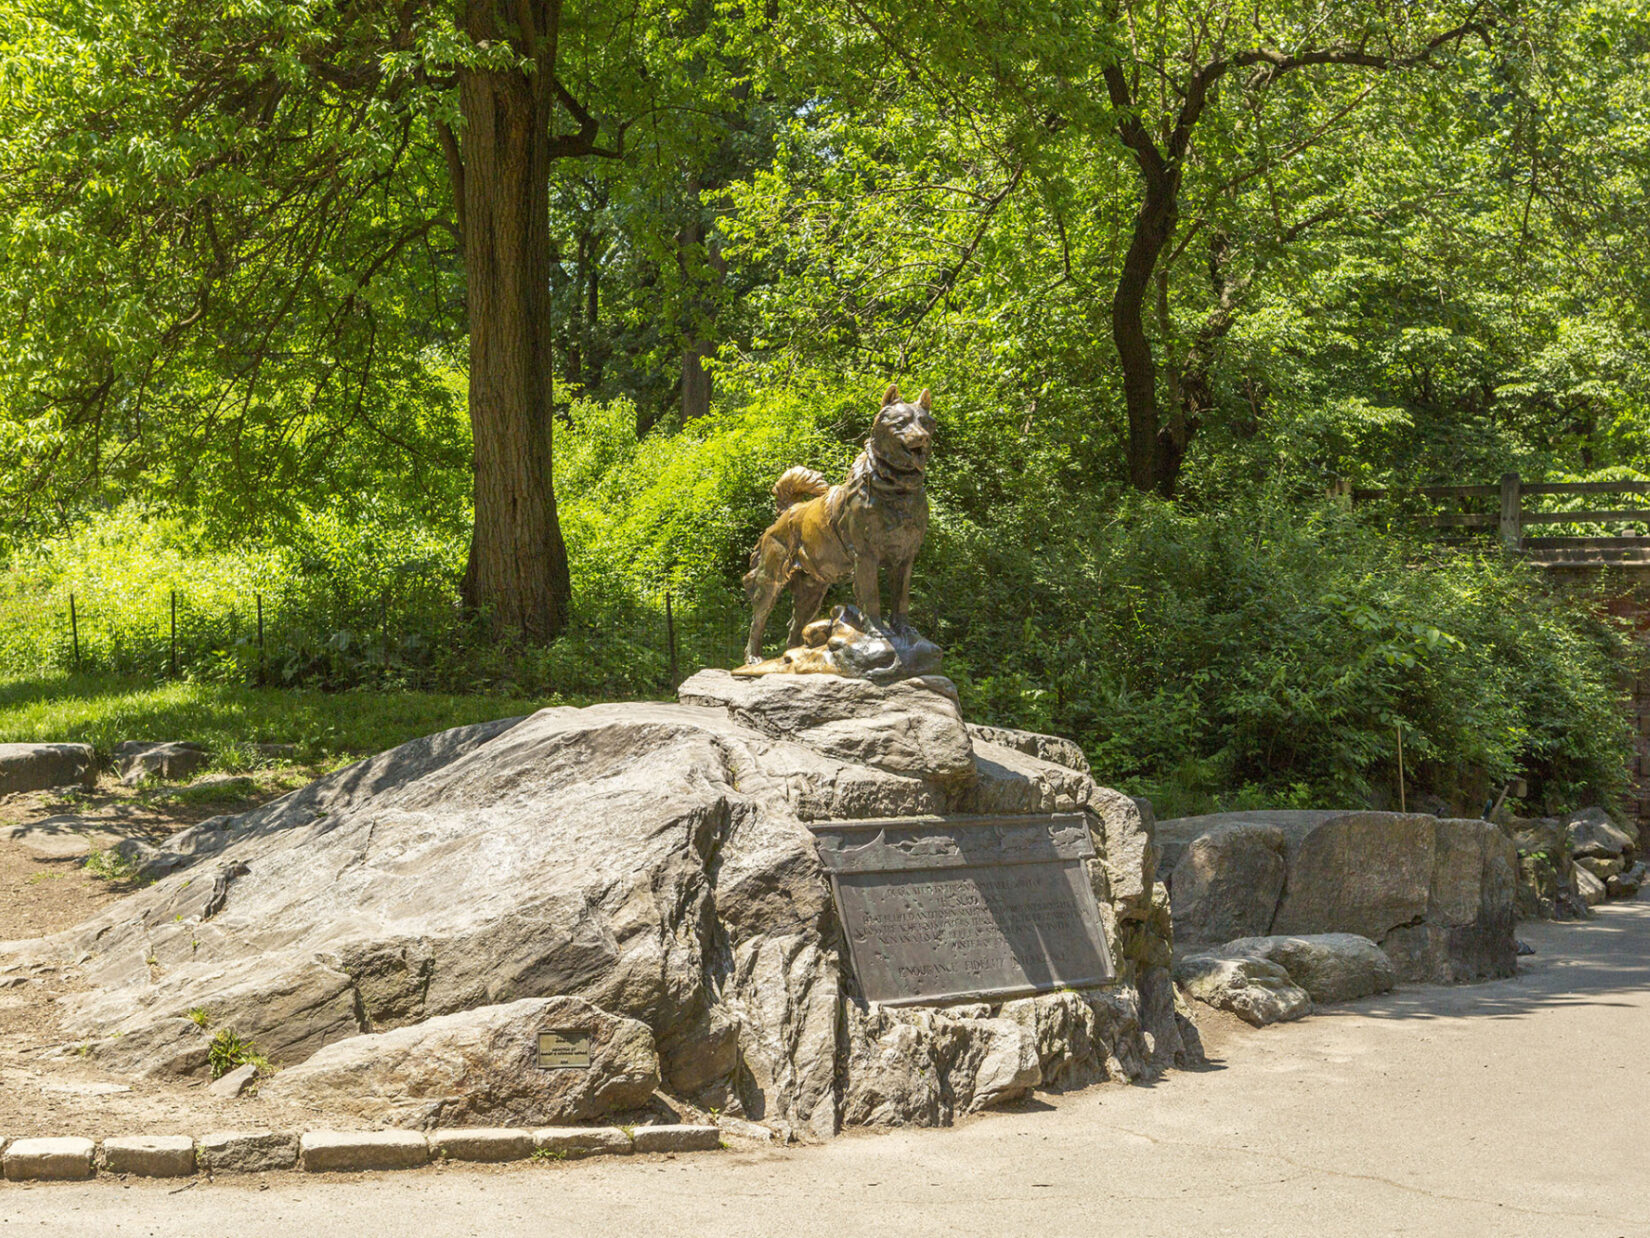 A History of Monuments in Central Park